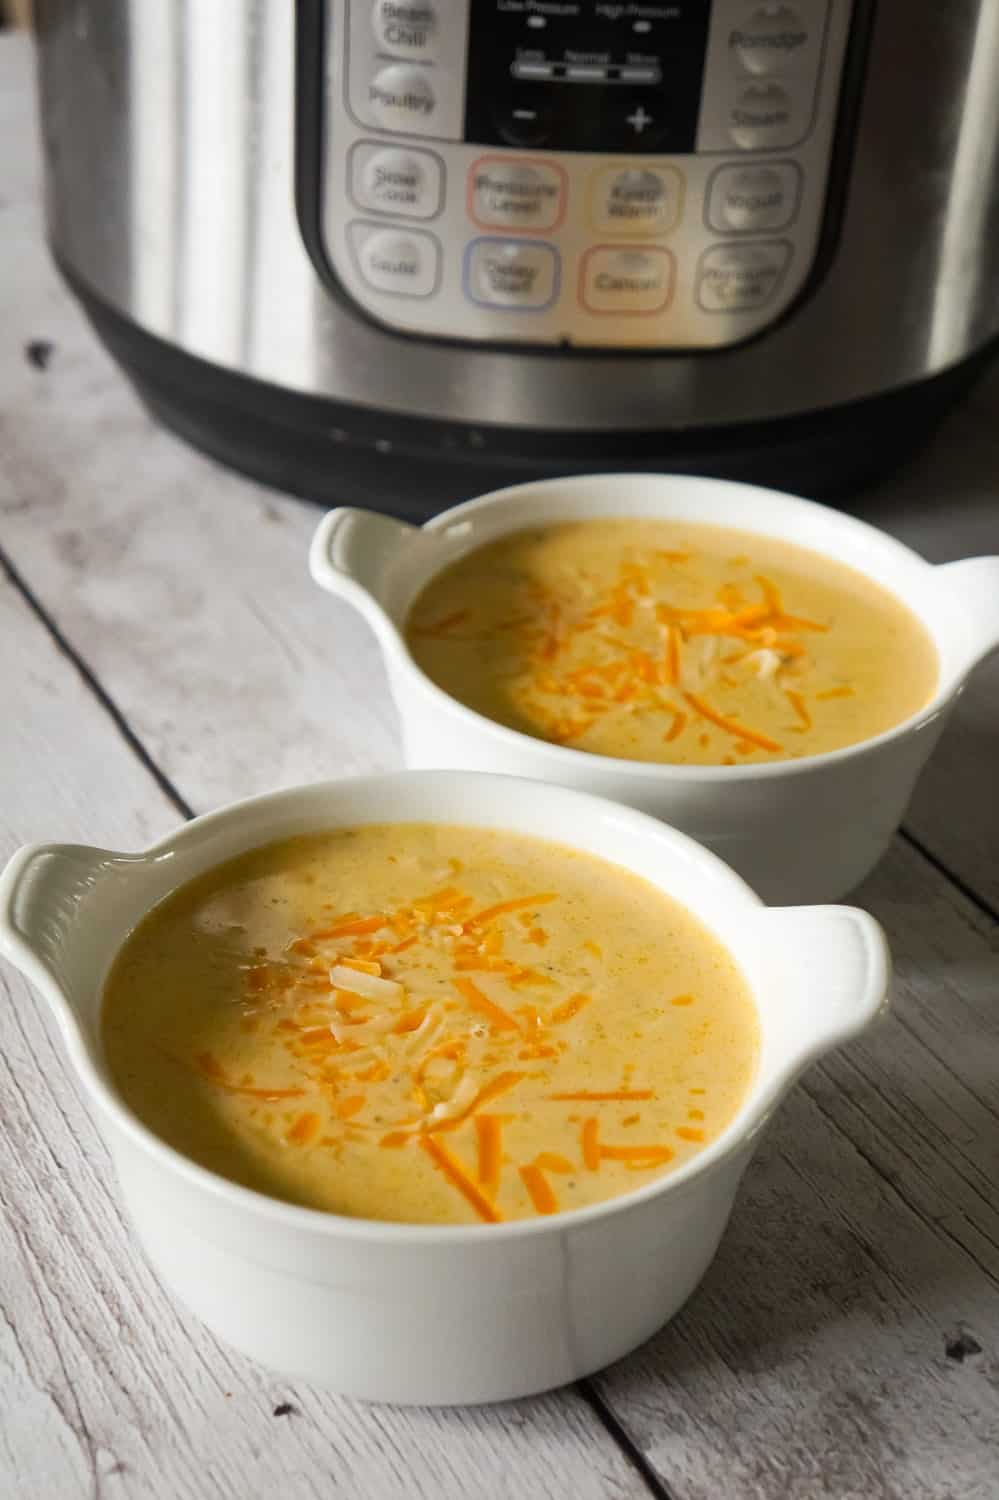 Instant Pot Broccoli Cheese Soup with Chicken is an easy pressure cooker soup recipe loaded with chunks of chicken, broccoli and cheddar cheese.